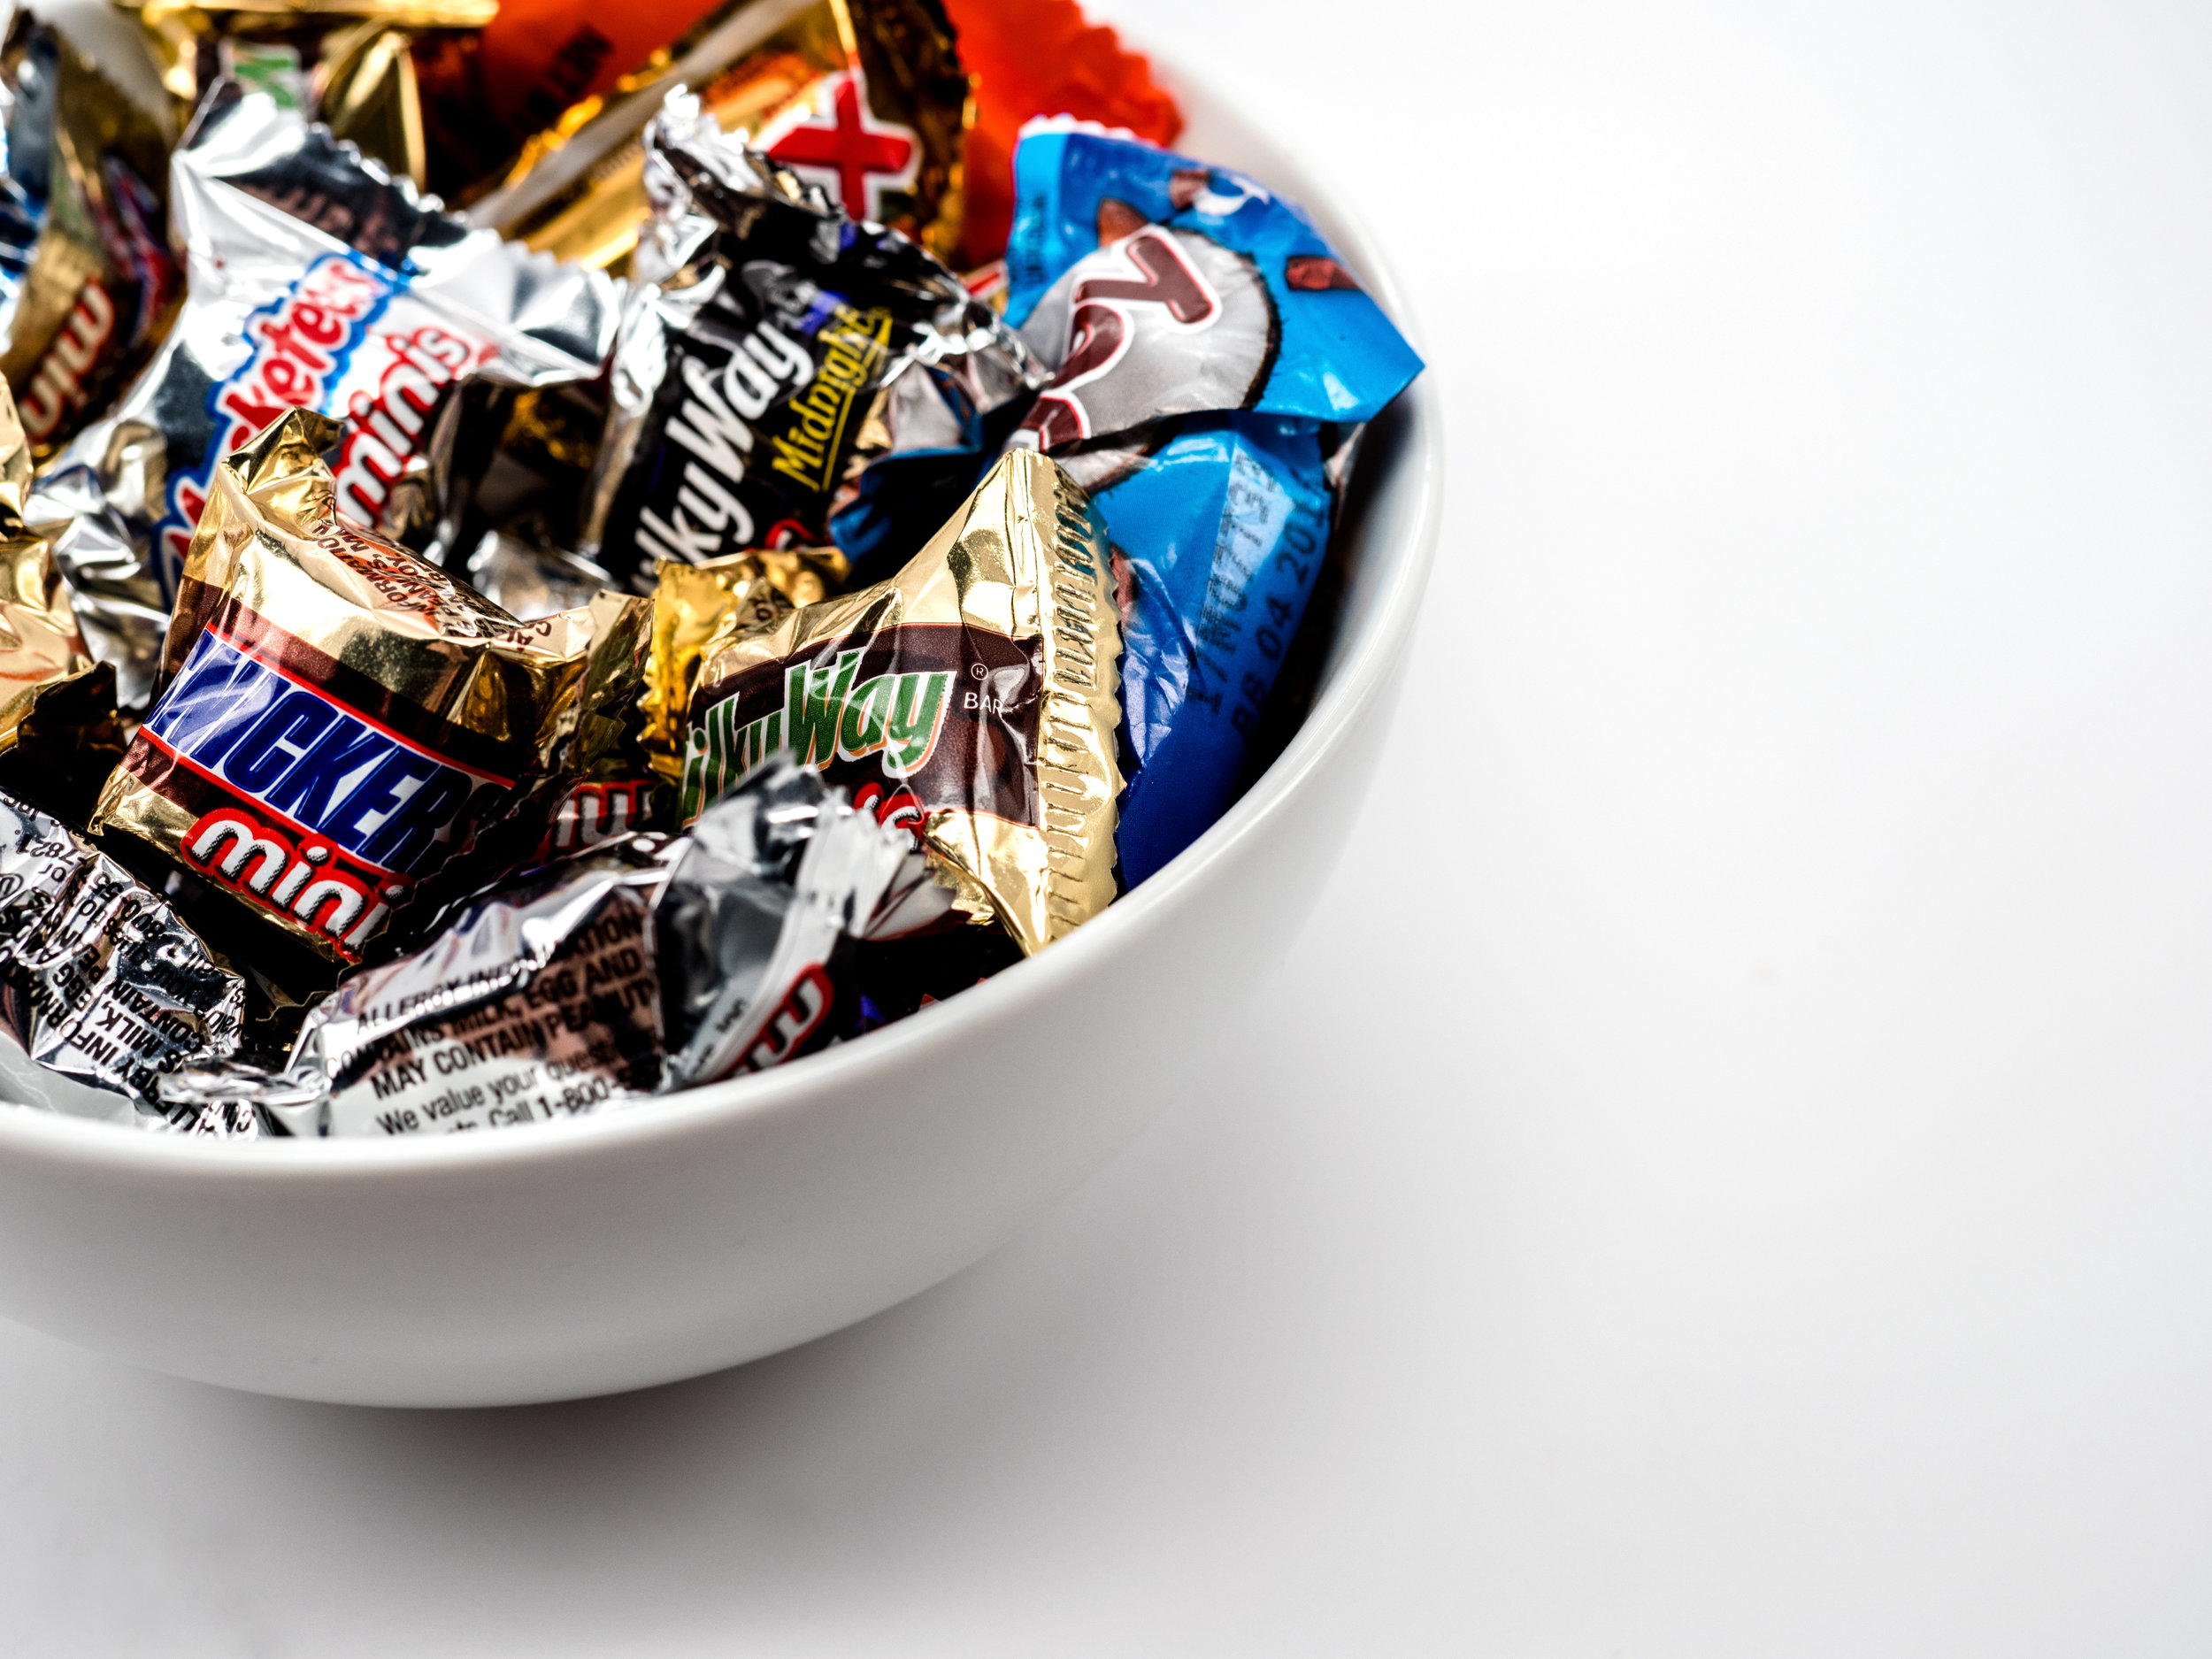 Musings by the Glass - Tips for Pairing Beer and Halloween Candy - Halloween Candy Bowl